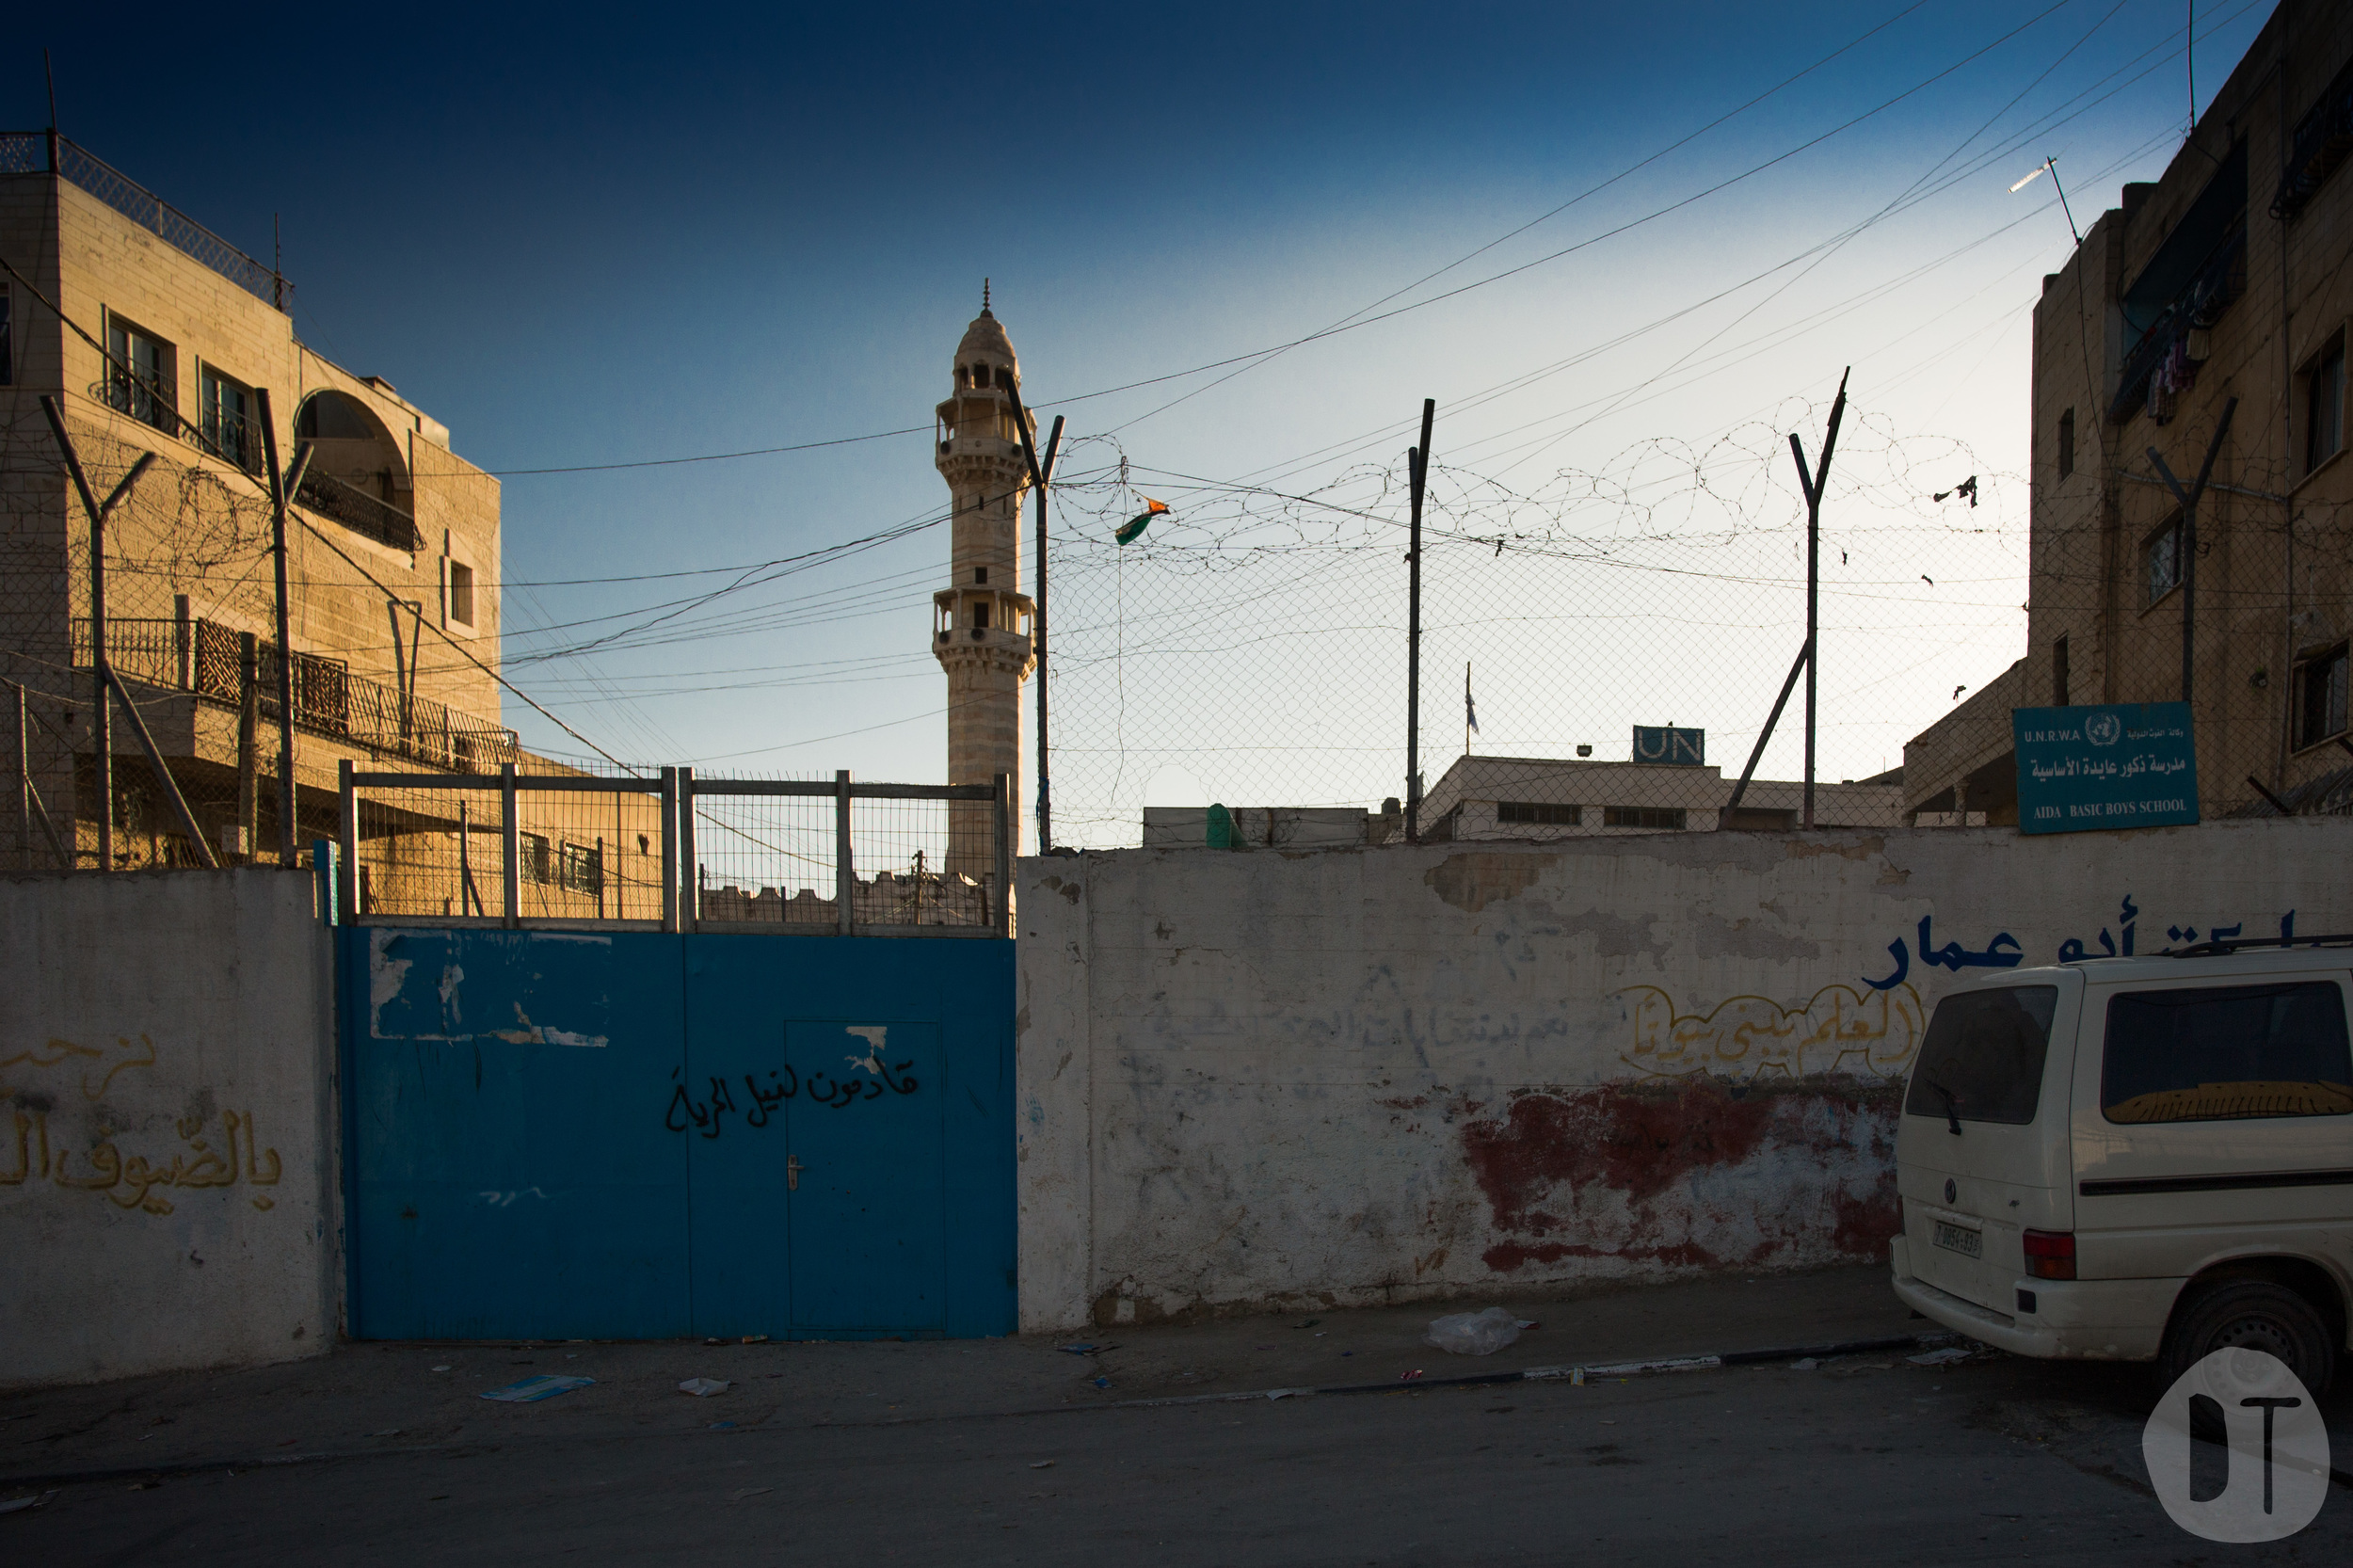 Entrance to a UN supported school in Aida Refugee Camp - Bethlehem.